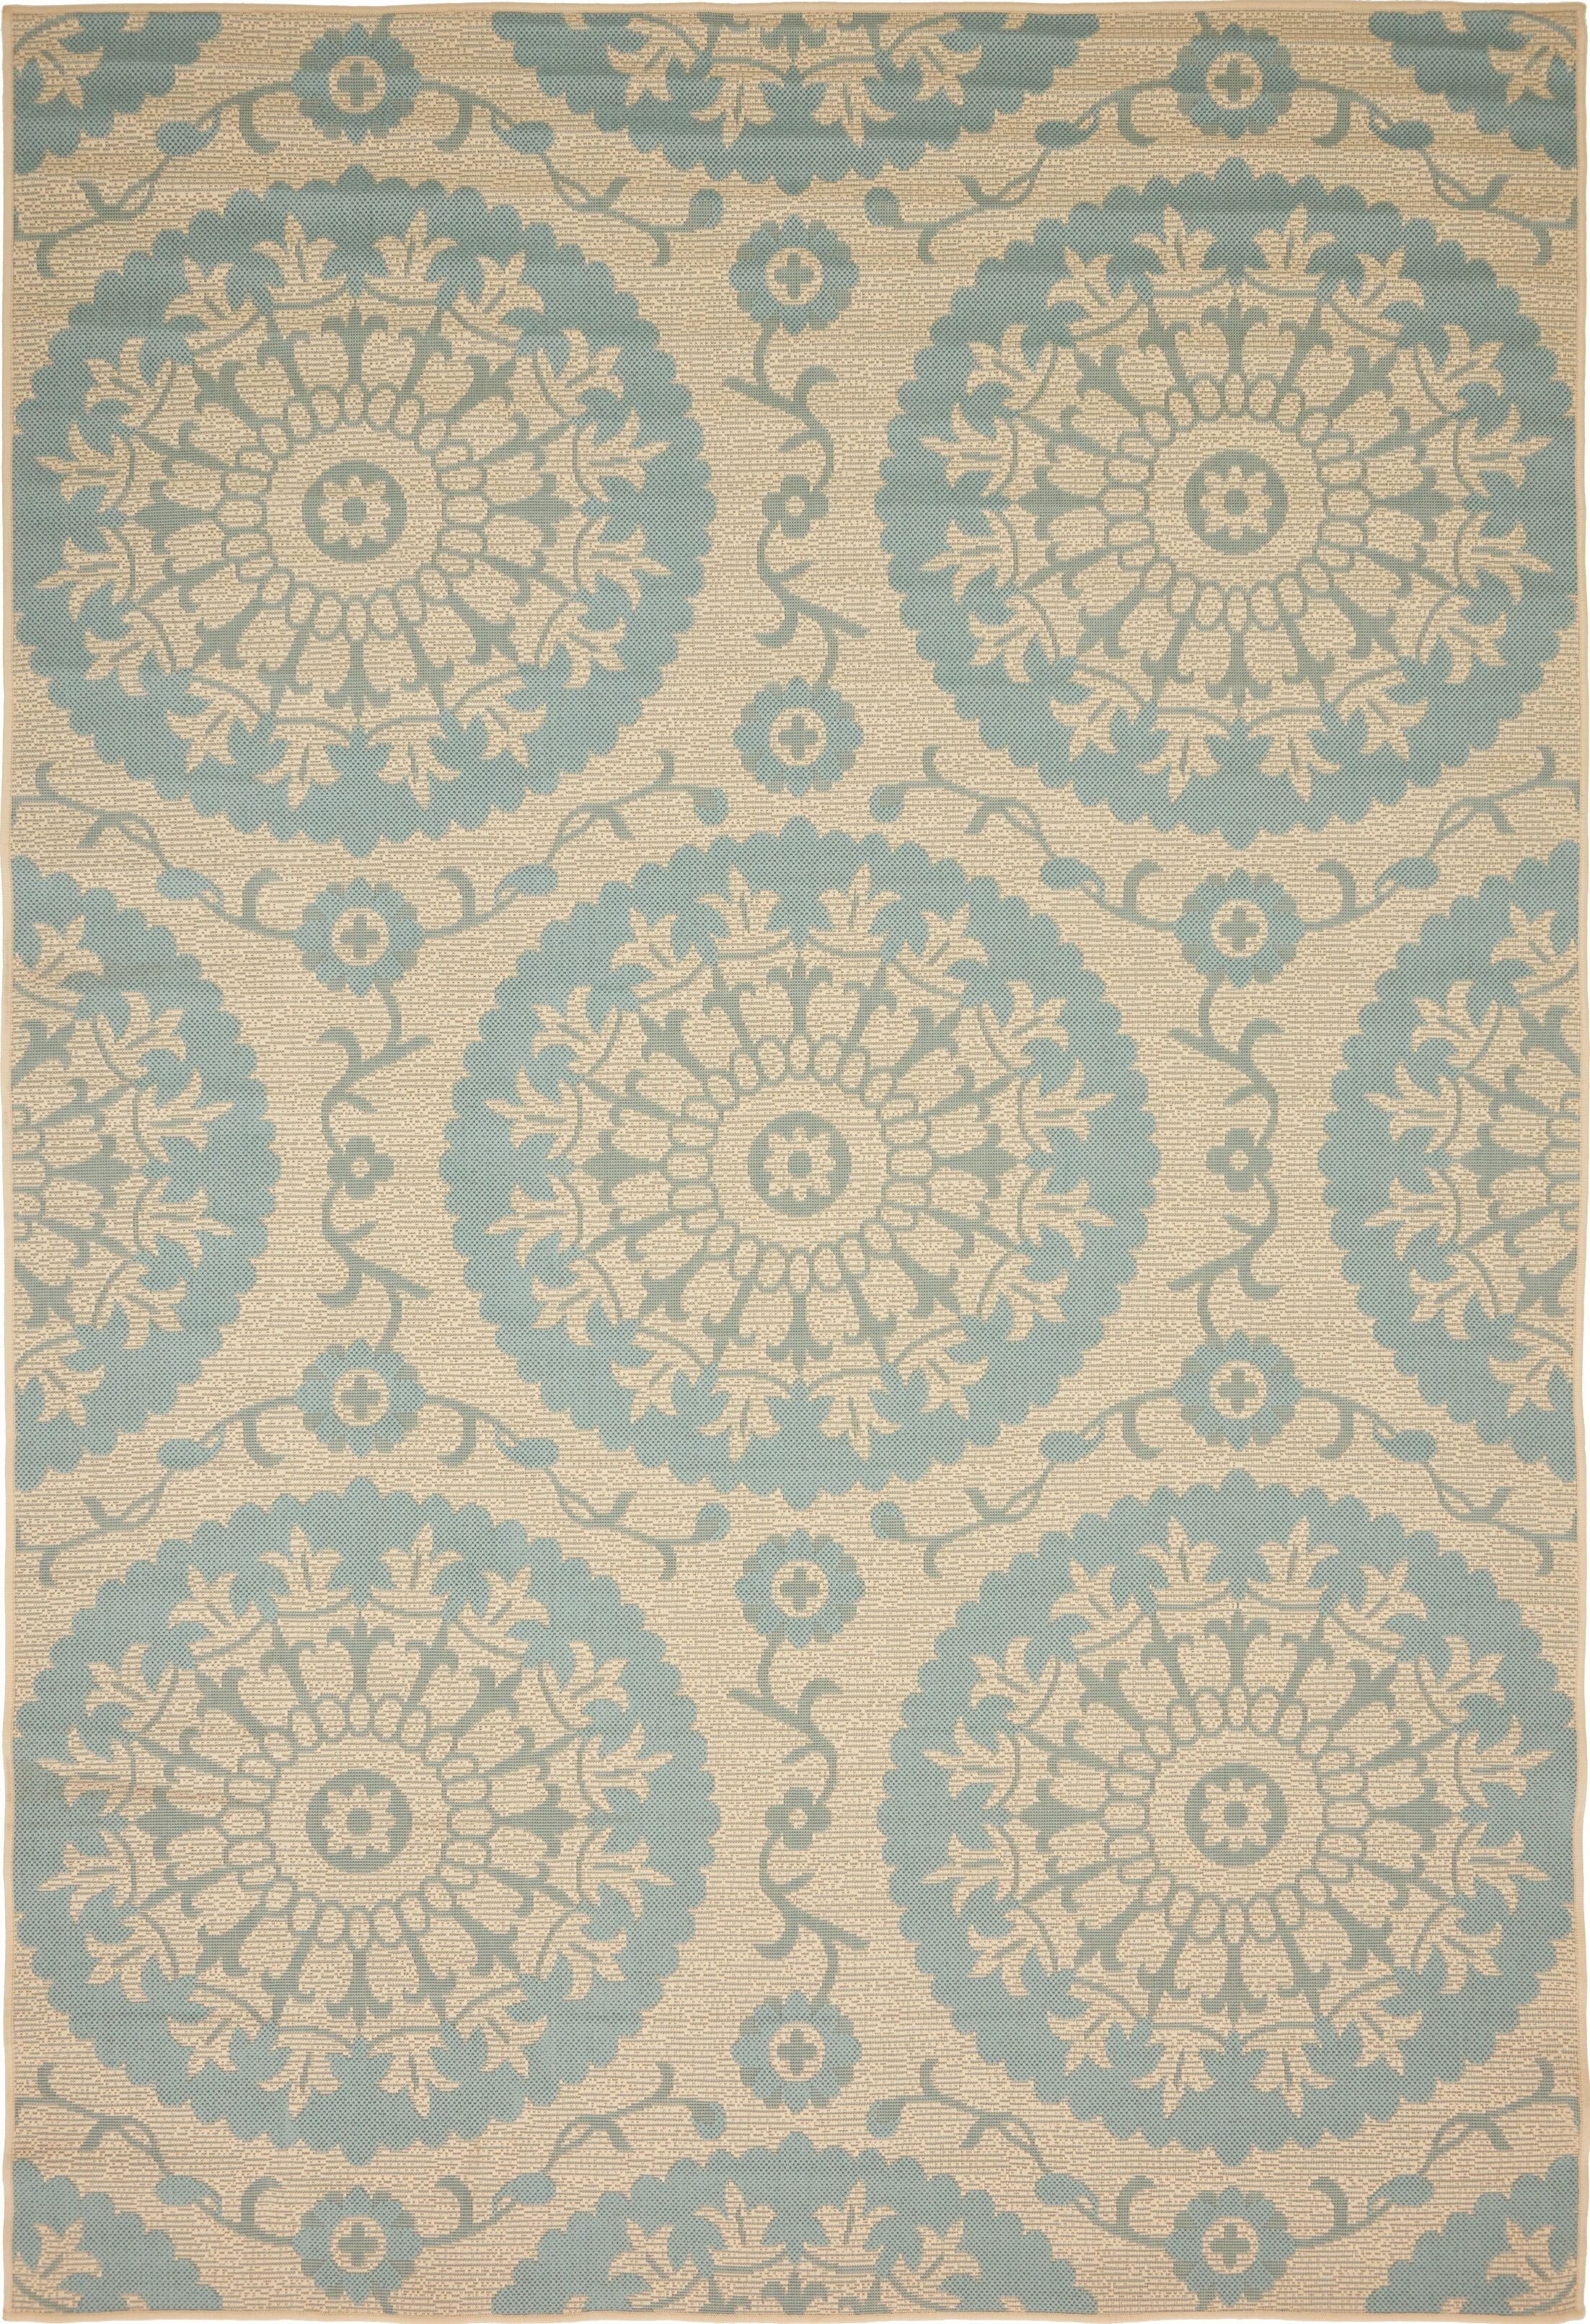 Keough Beige Outdoor Area Rug Rug Size: Rectangle 6' x 9'